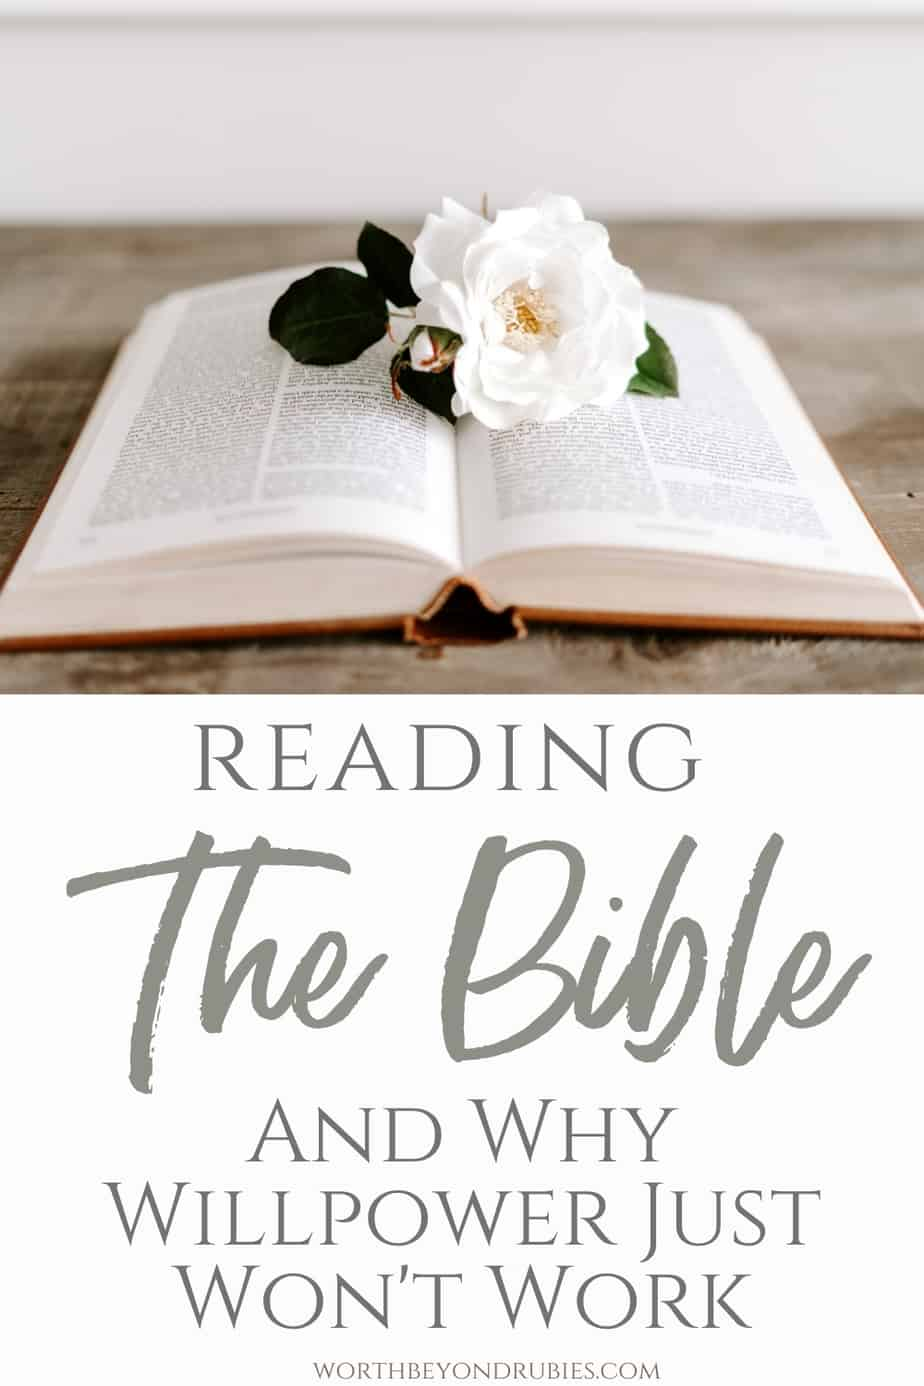 An image of a Bible open on a table with a flower on it and text that says Reading the Bible and Why Willpower Just Won't Work